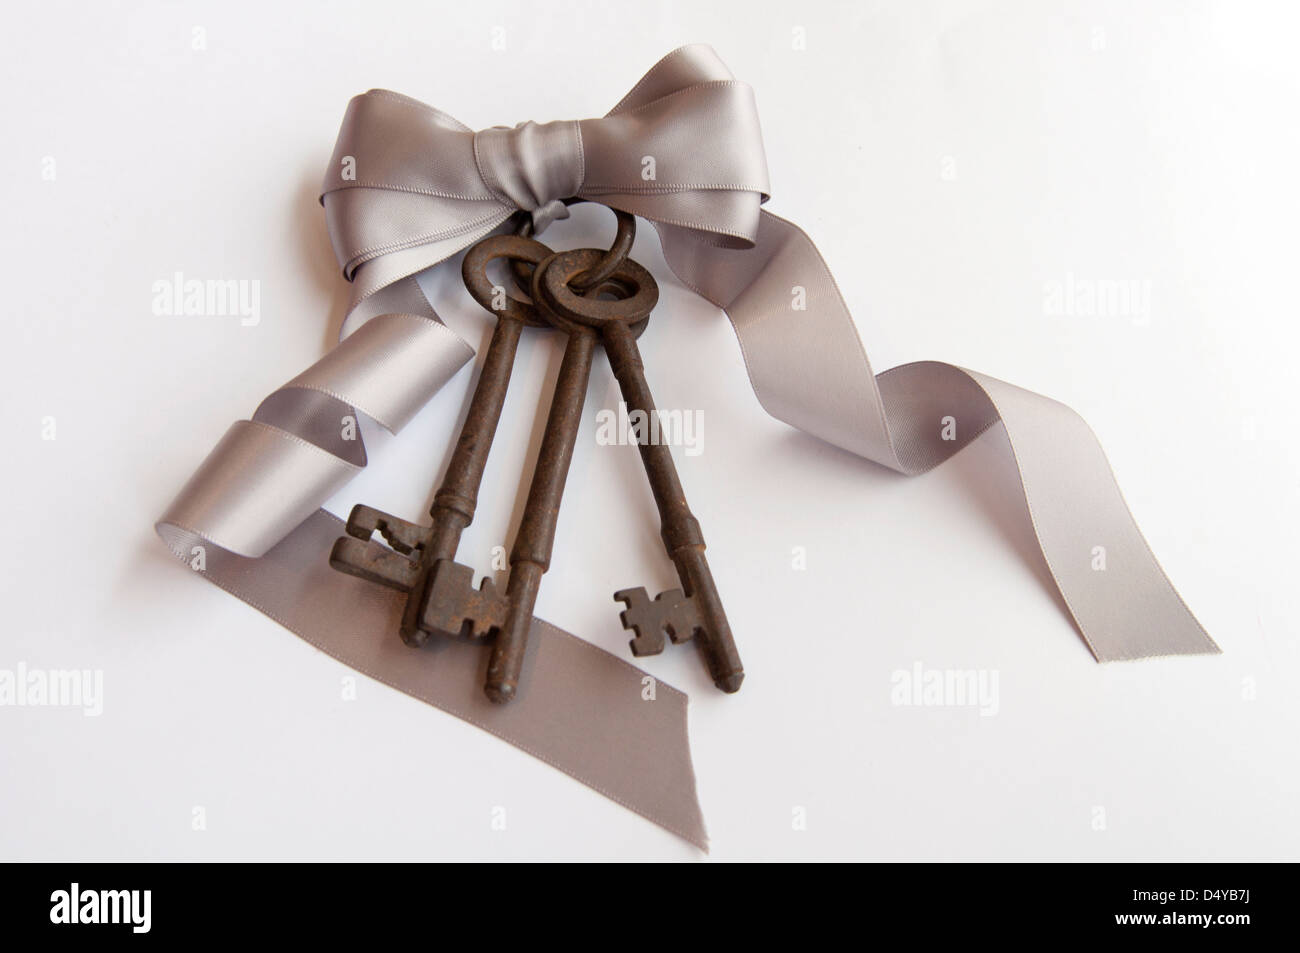 Three rusty antique vintage keys tied with keyring on silk silver ribbon bow - Stock Image